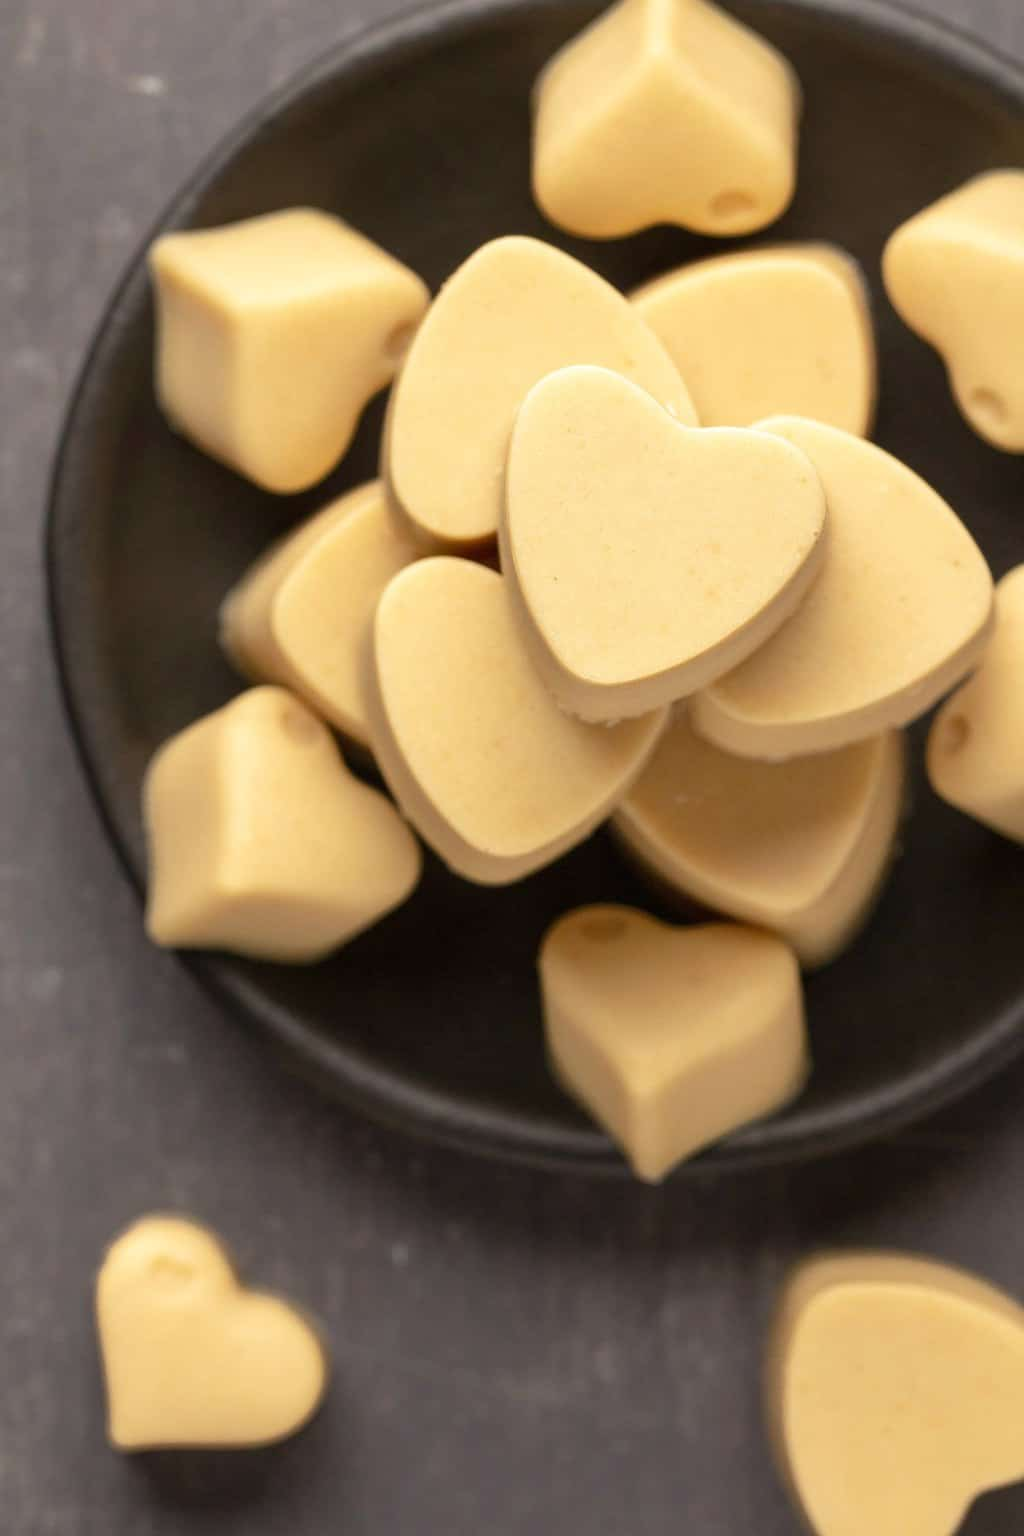 Heart shaped vegan white chocolates stacked up on a black plate.